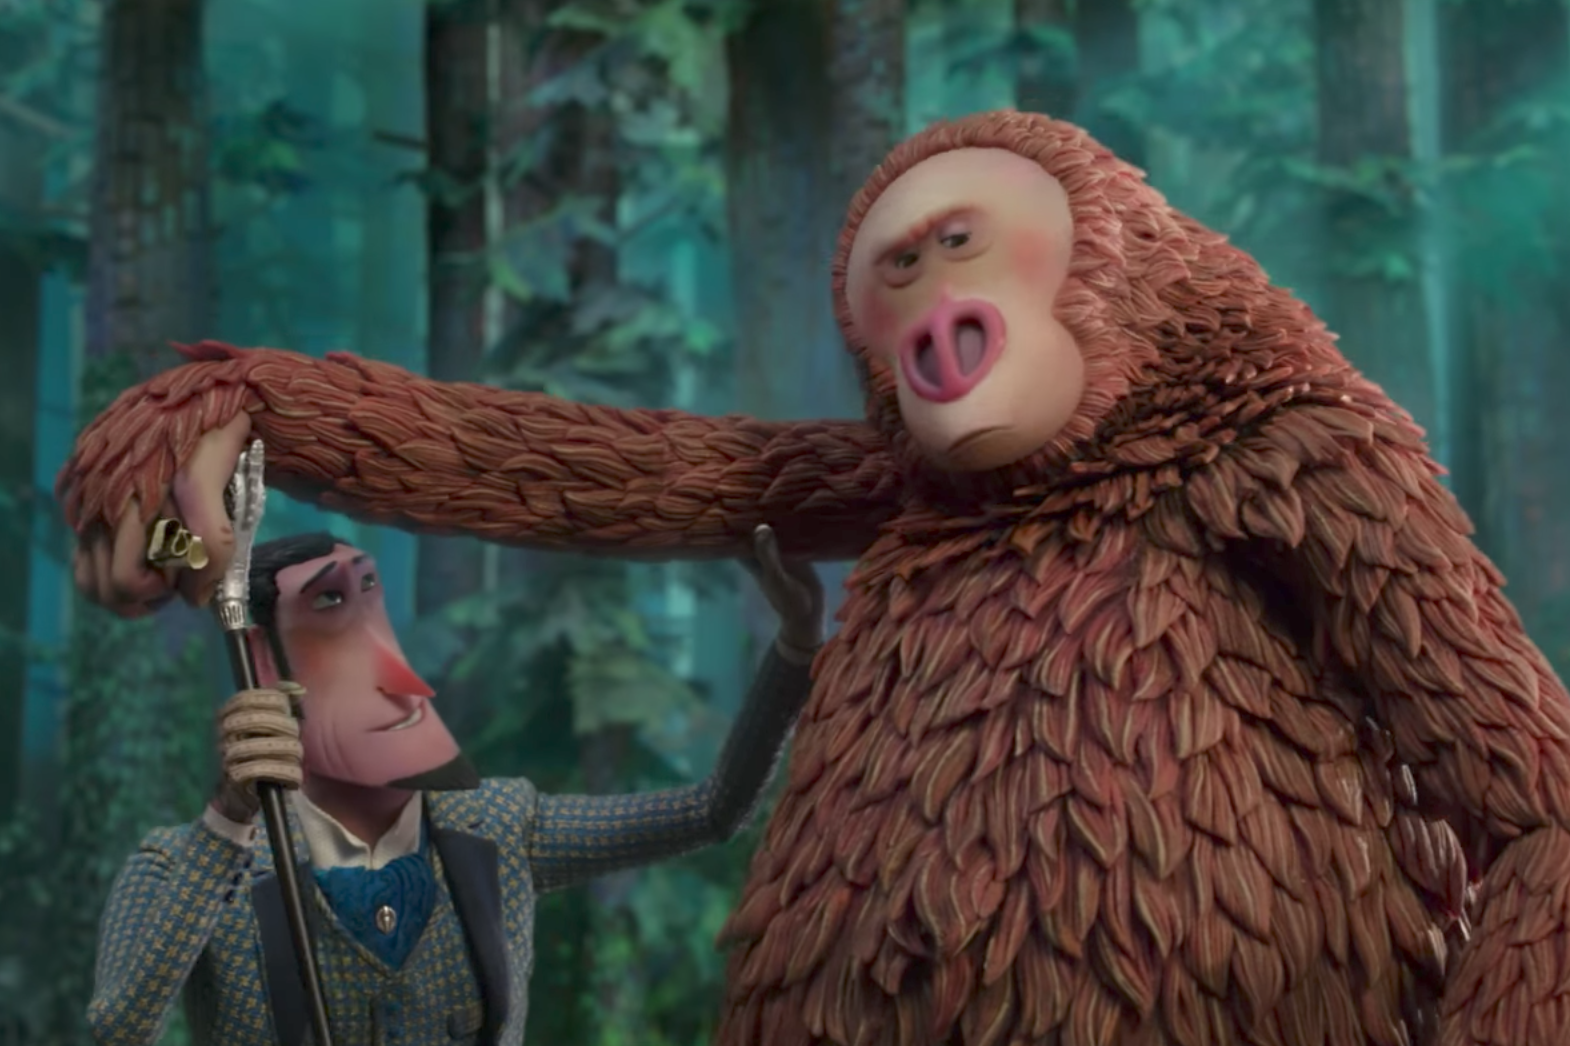 Movie Poster 2019: Missing Link Review: An Almost Great Film